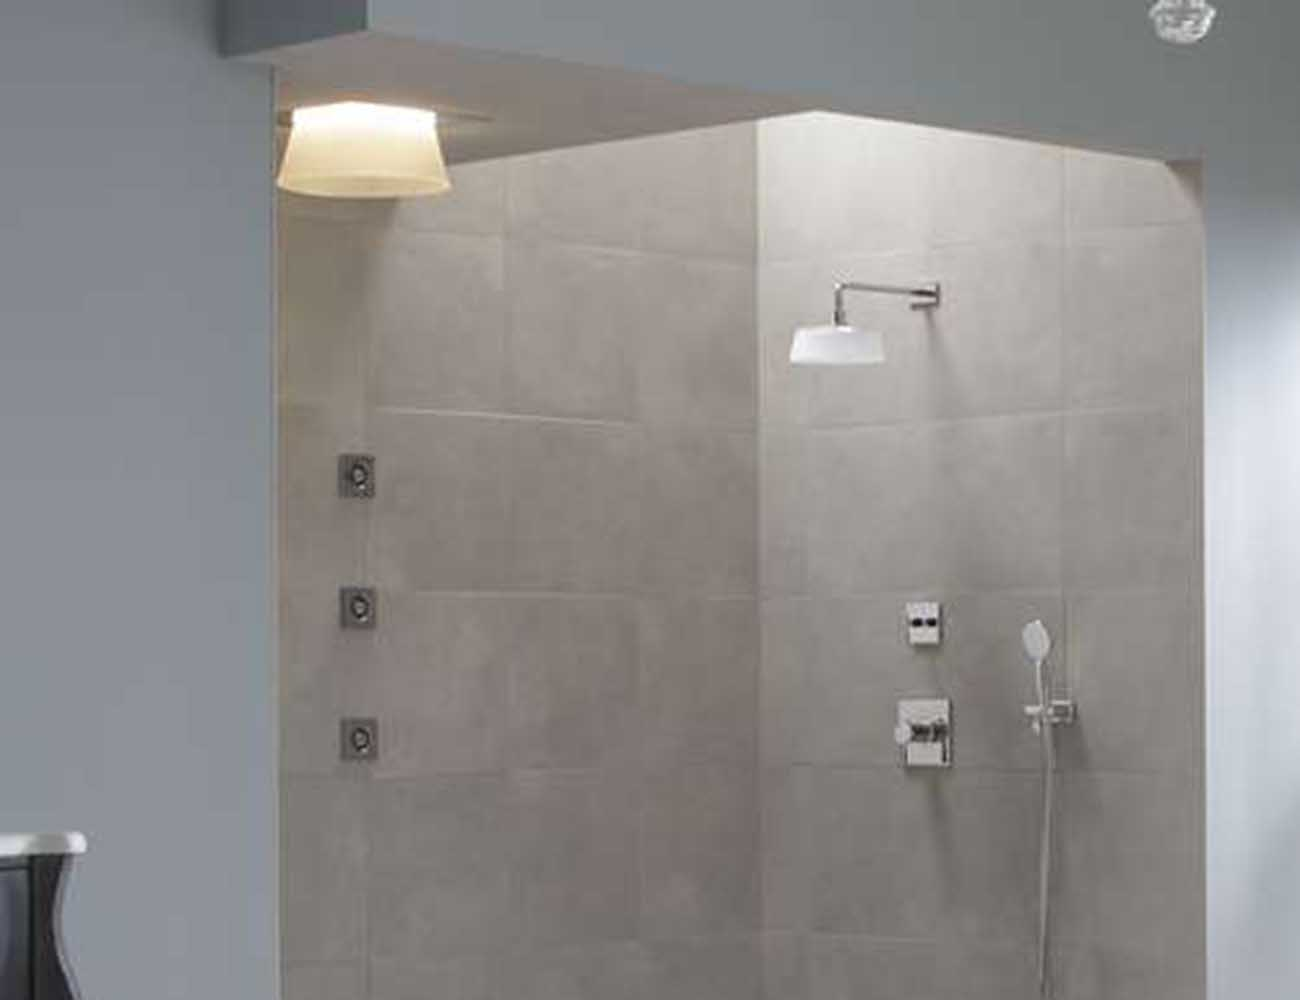 LED Ceiling Mounted Shower by Toto » Gadget Flow